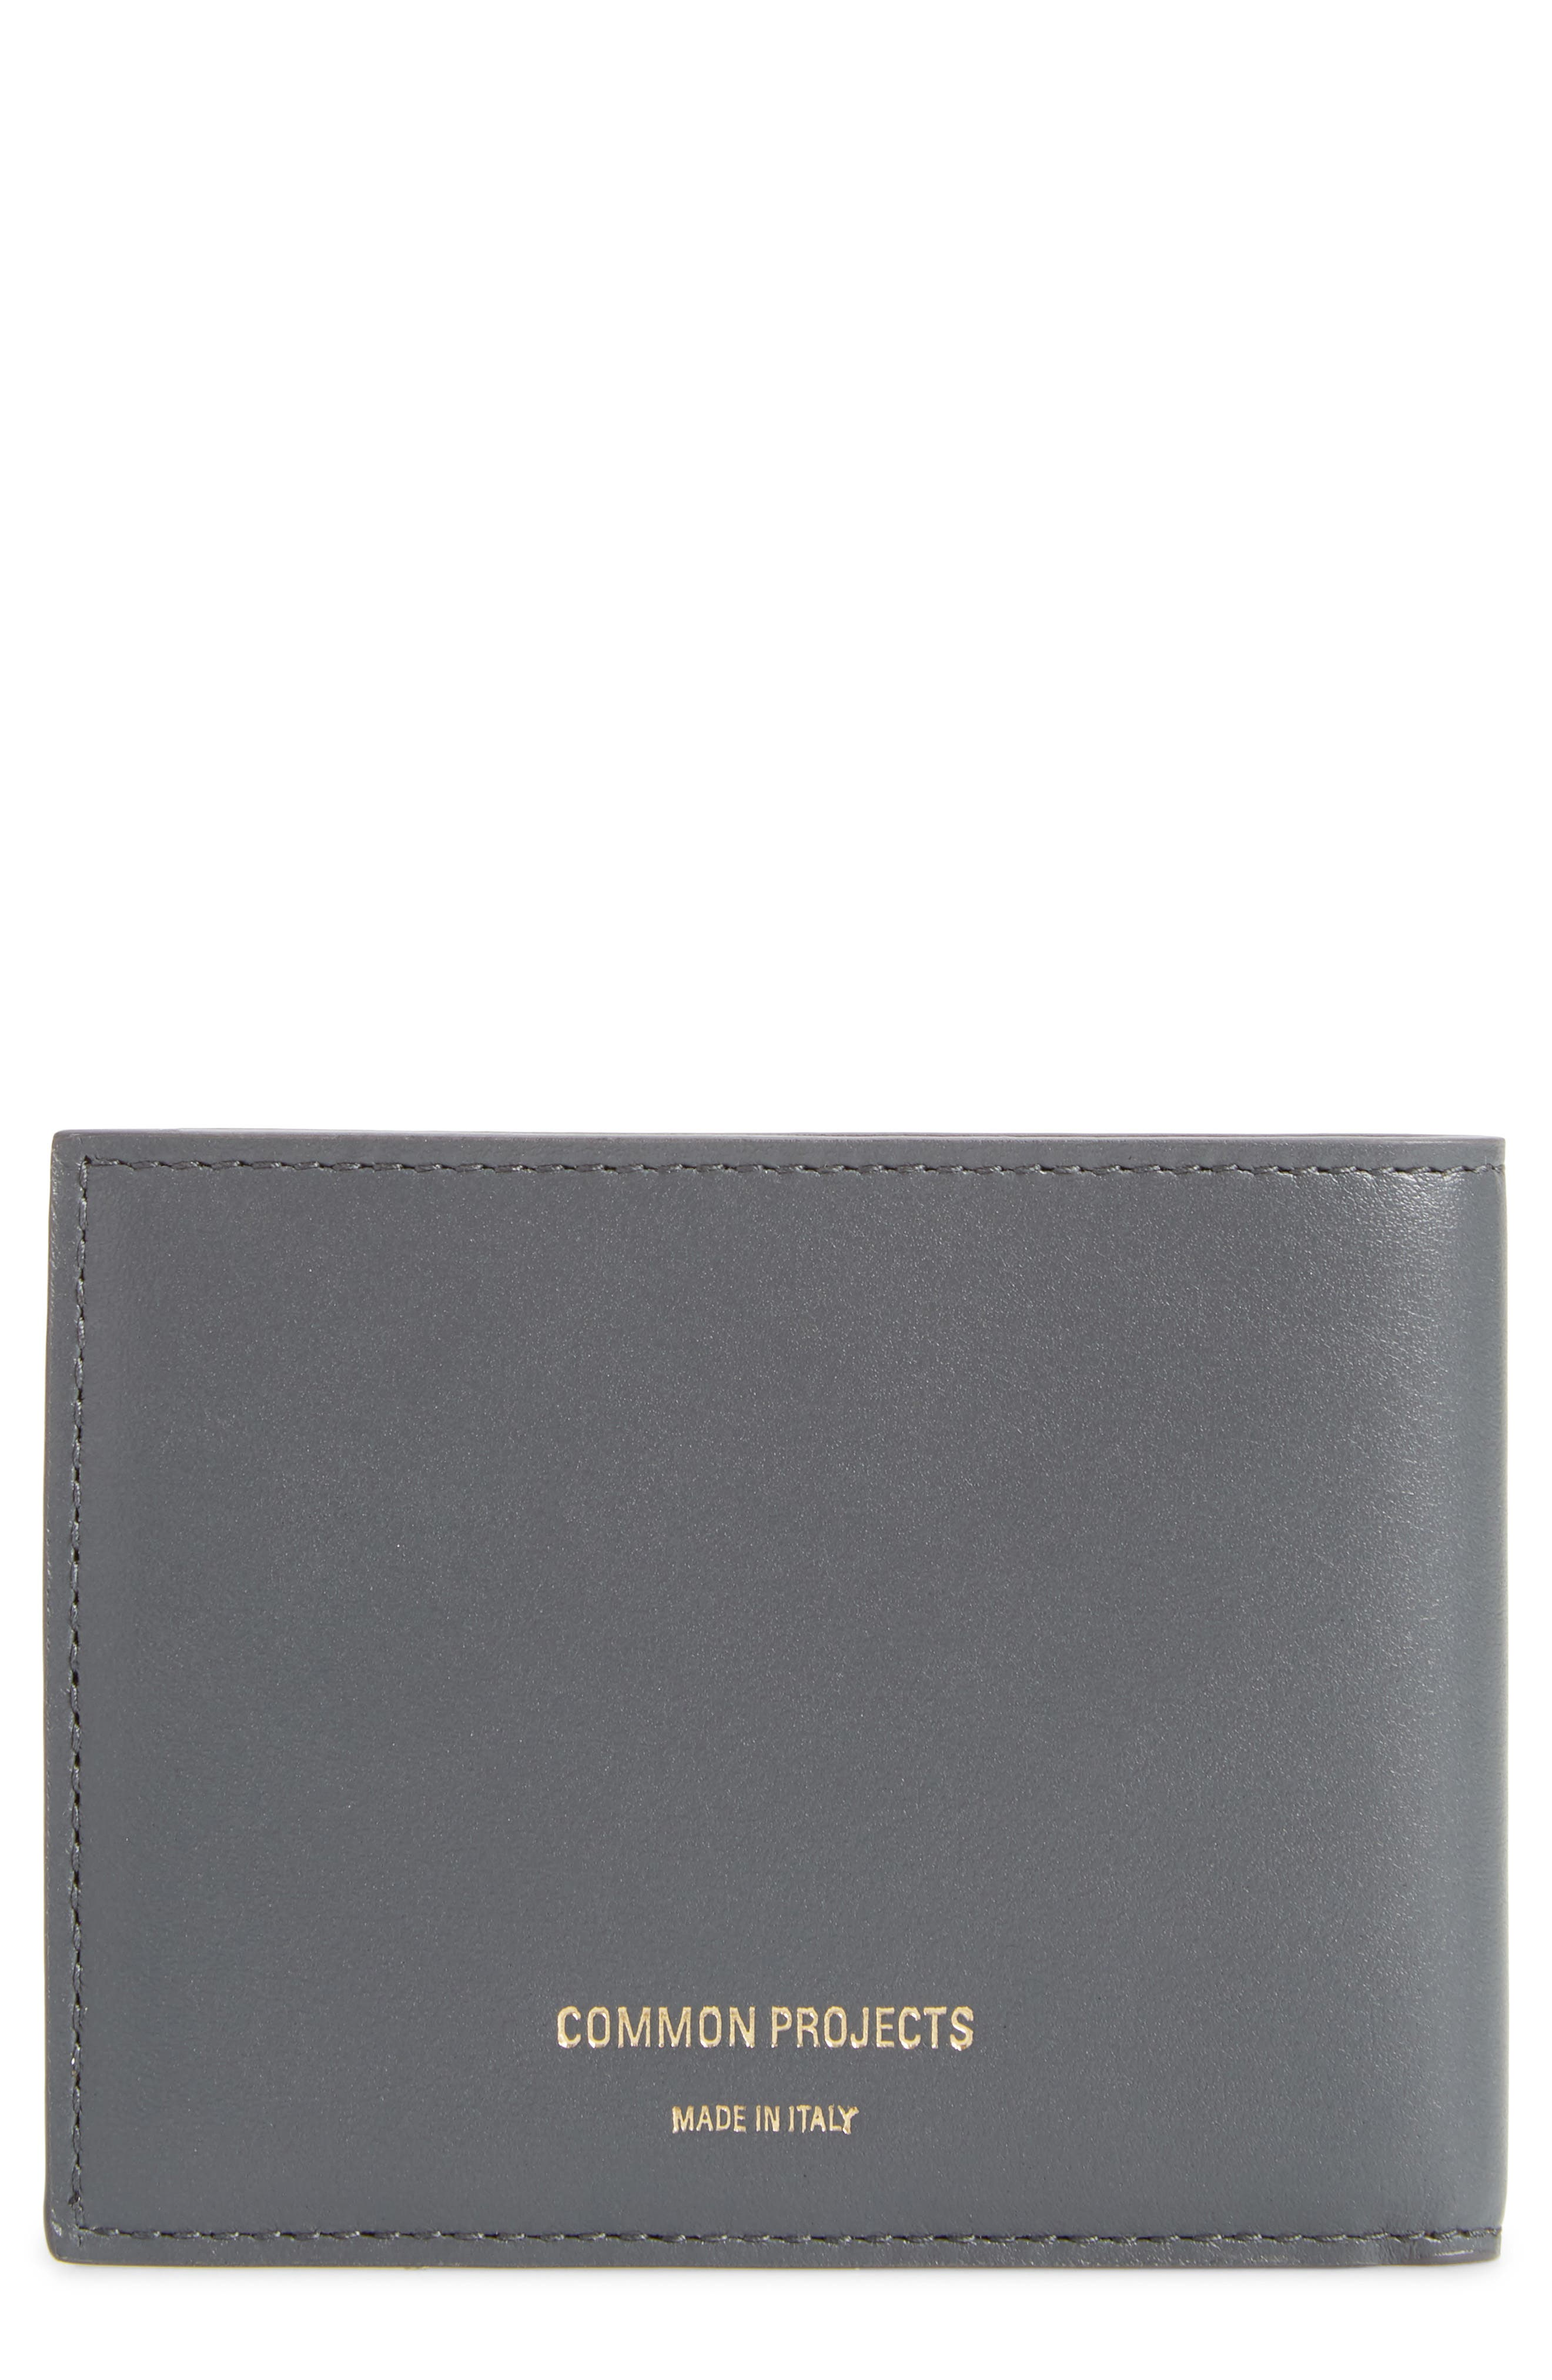 Leather Wallet,                             Main thumbnail 1, color,                             BLUE/ GREY